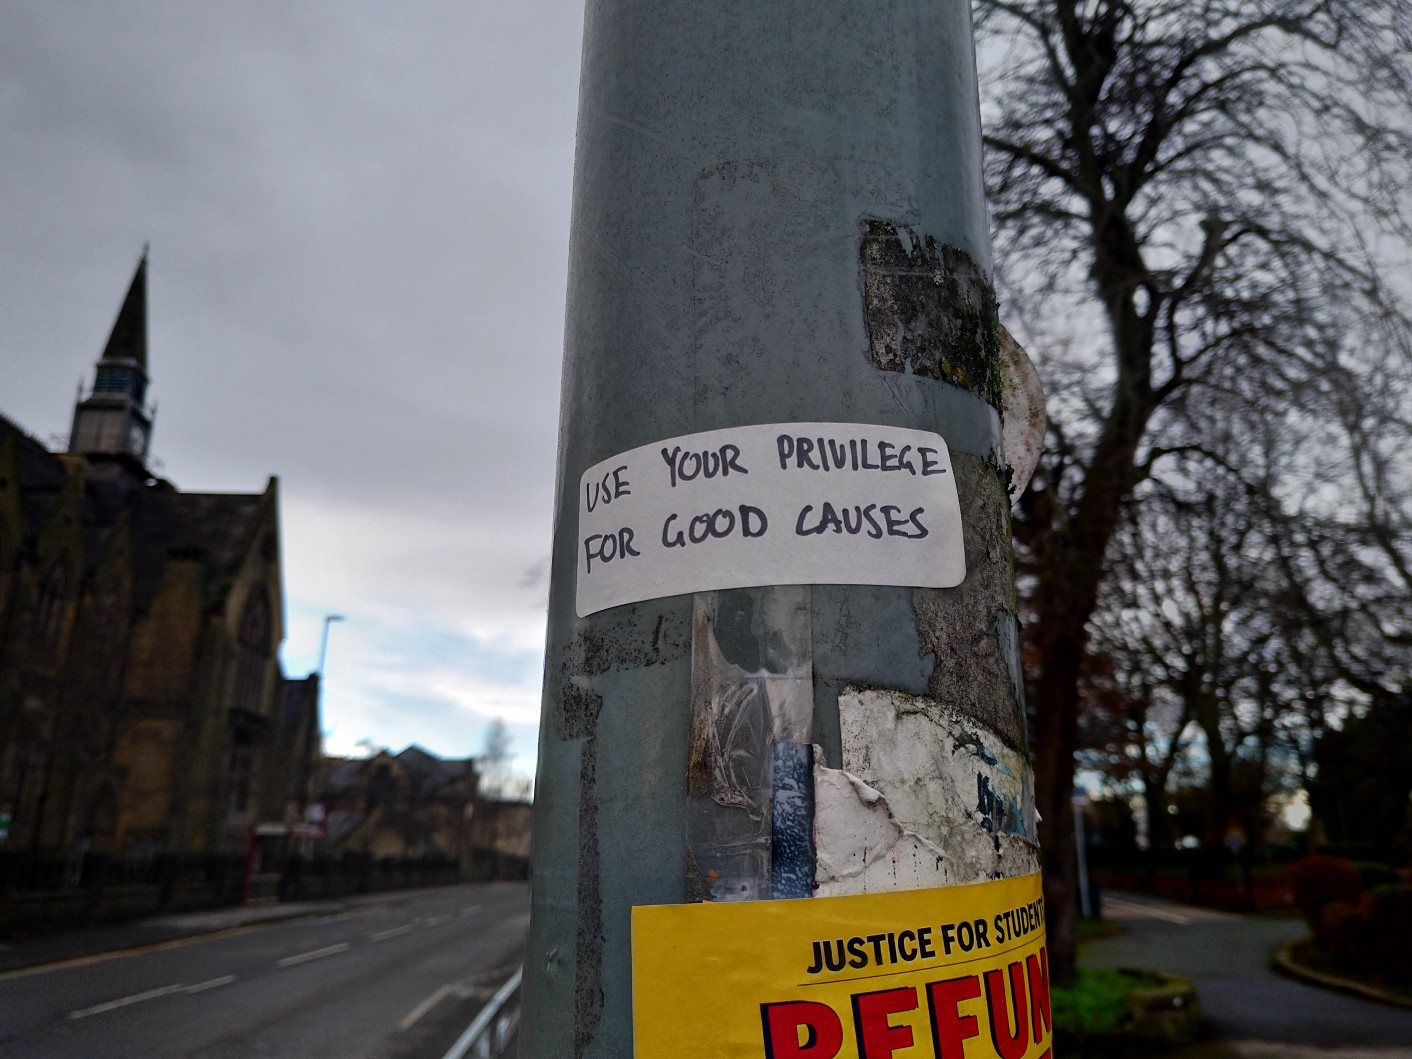 """Image of a pole with stickers on it, saying """"use your privilege for good causes""""."""